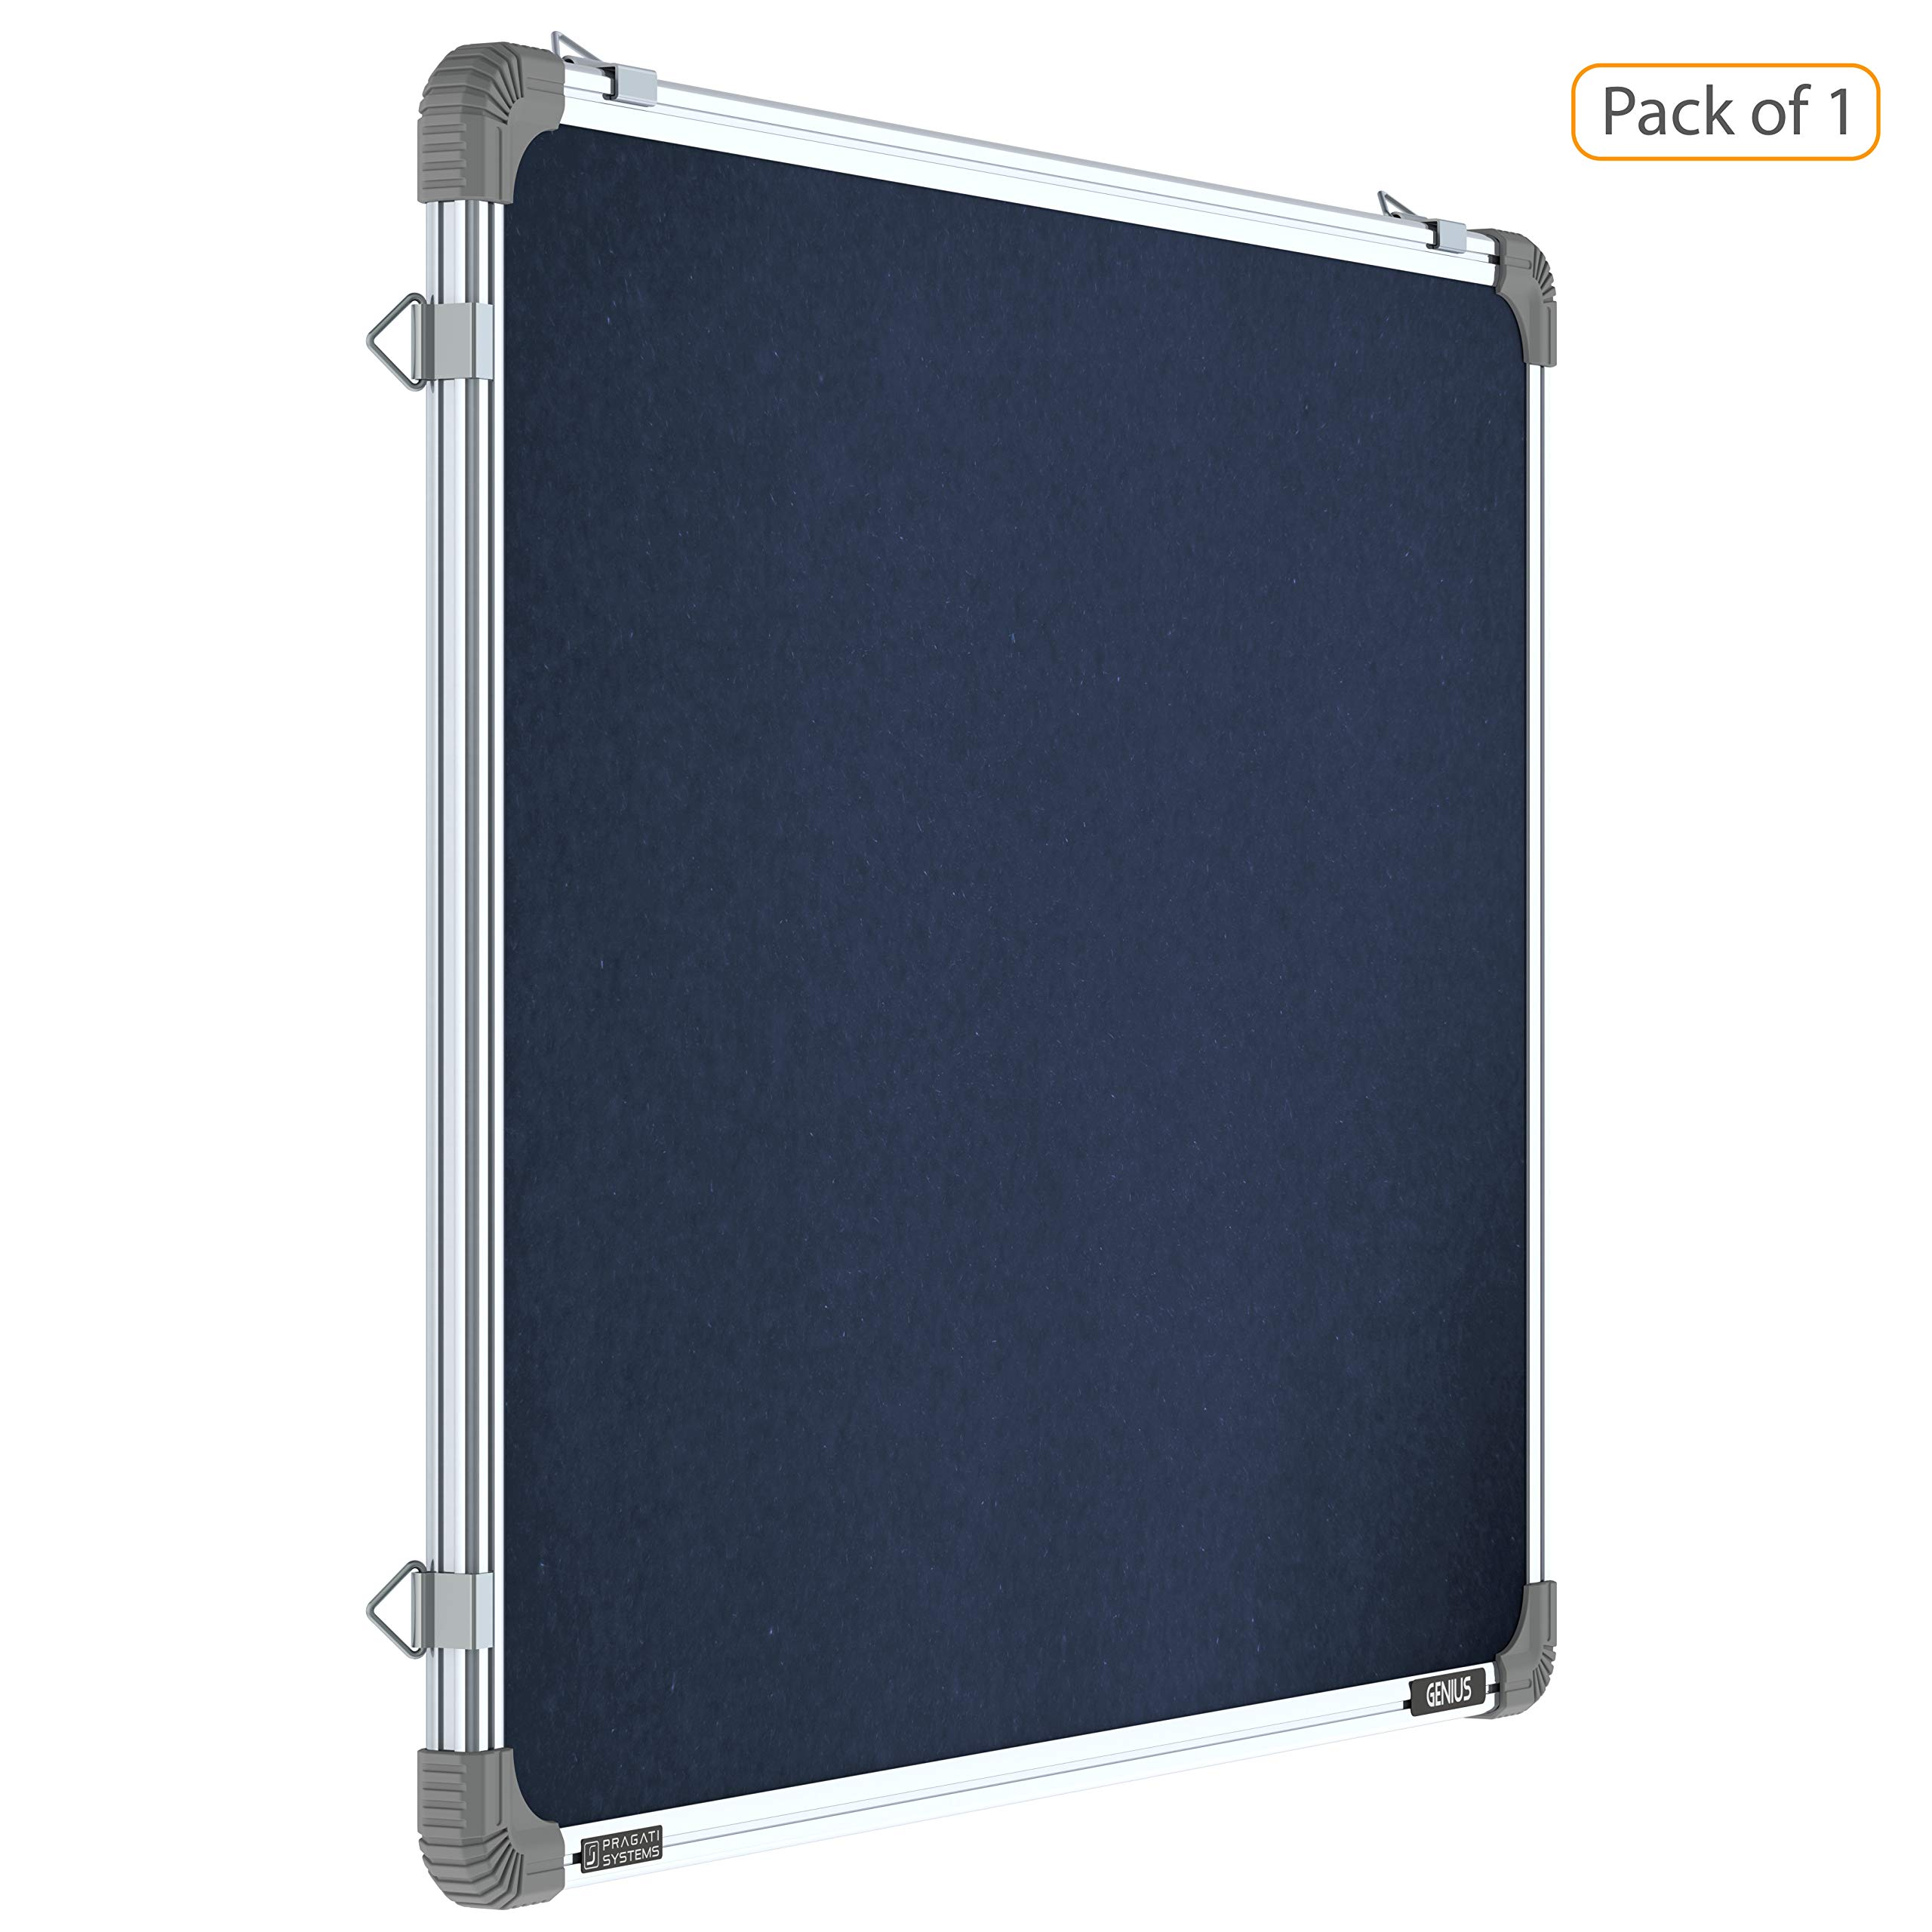 Pragati Systems® Genius Pin-up Display Board for Home, Kids, Office & School (GPUB6090), Lightweight Aluminium Frame, 2x3 Feet, Blue (Pack of 1) product image